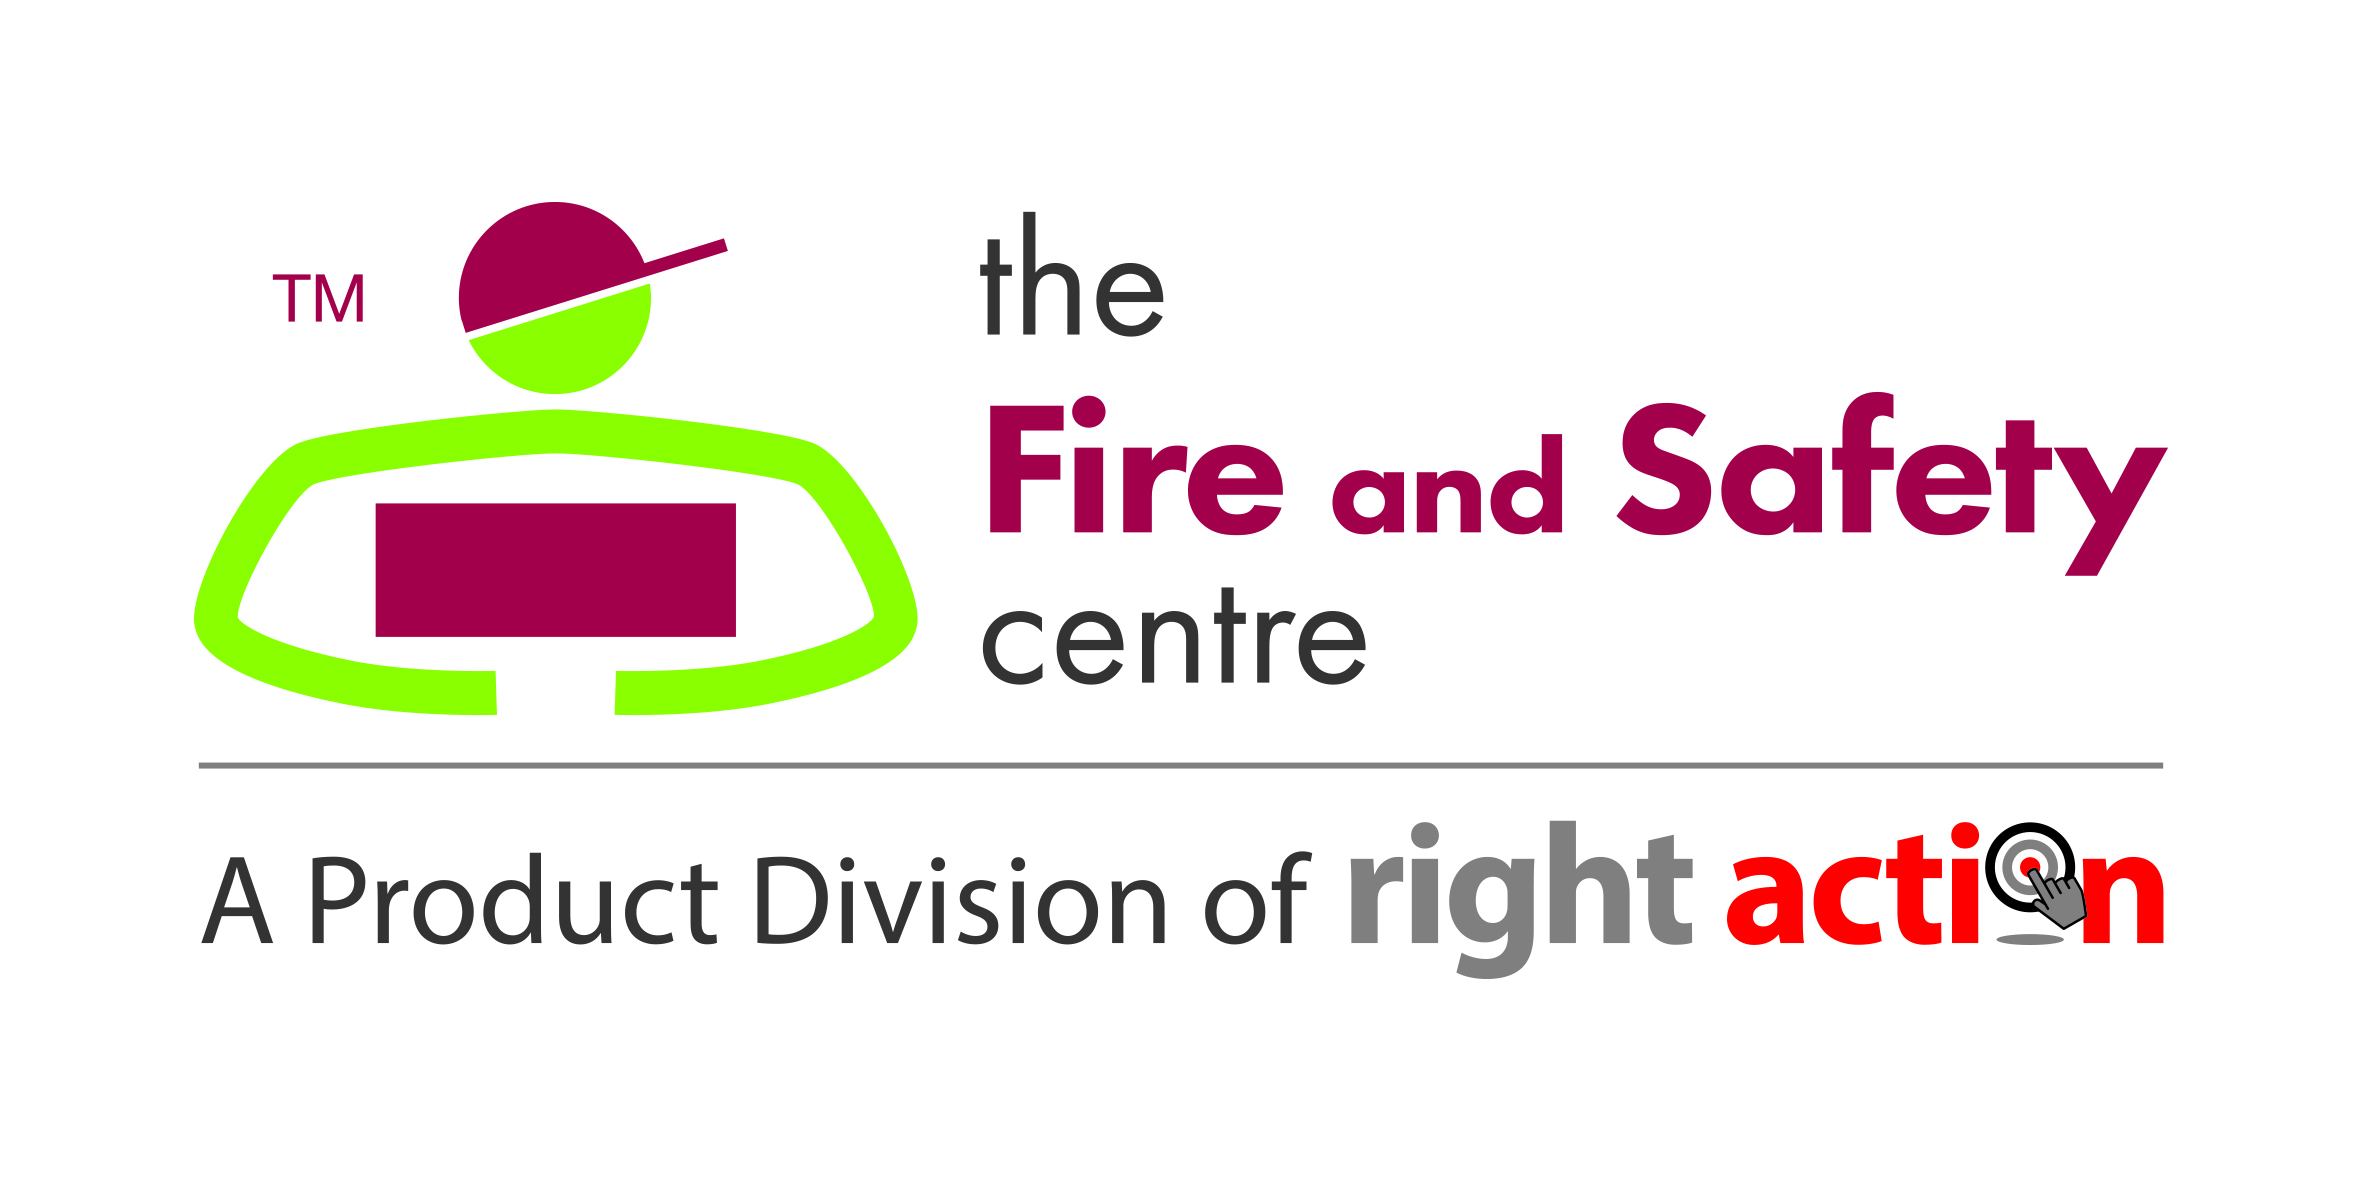 Fire and Safety Centre